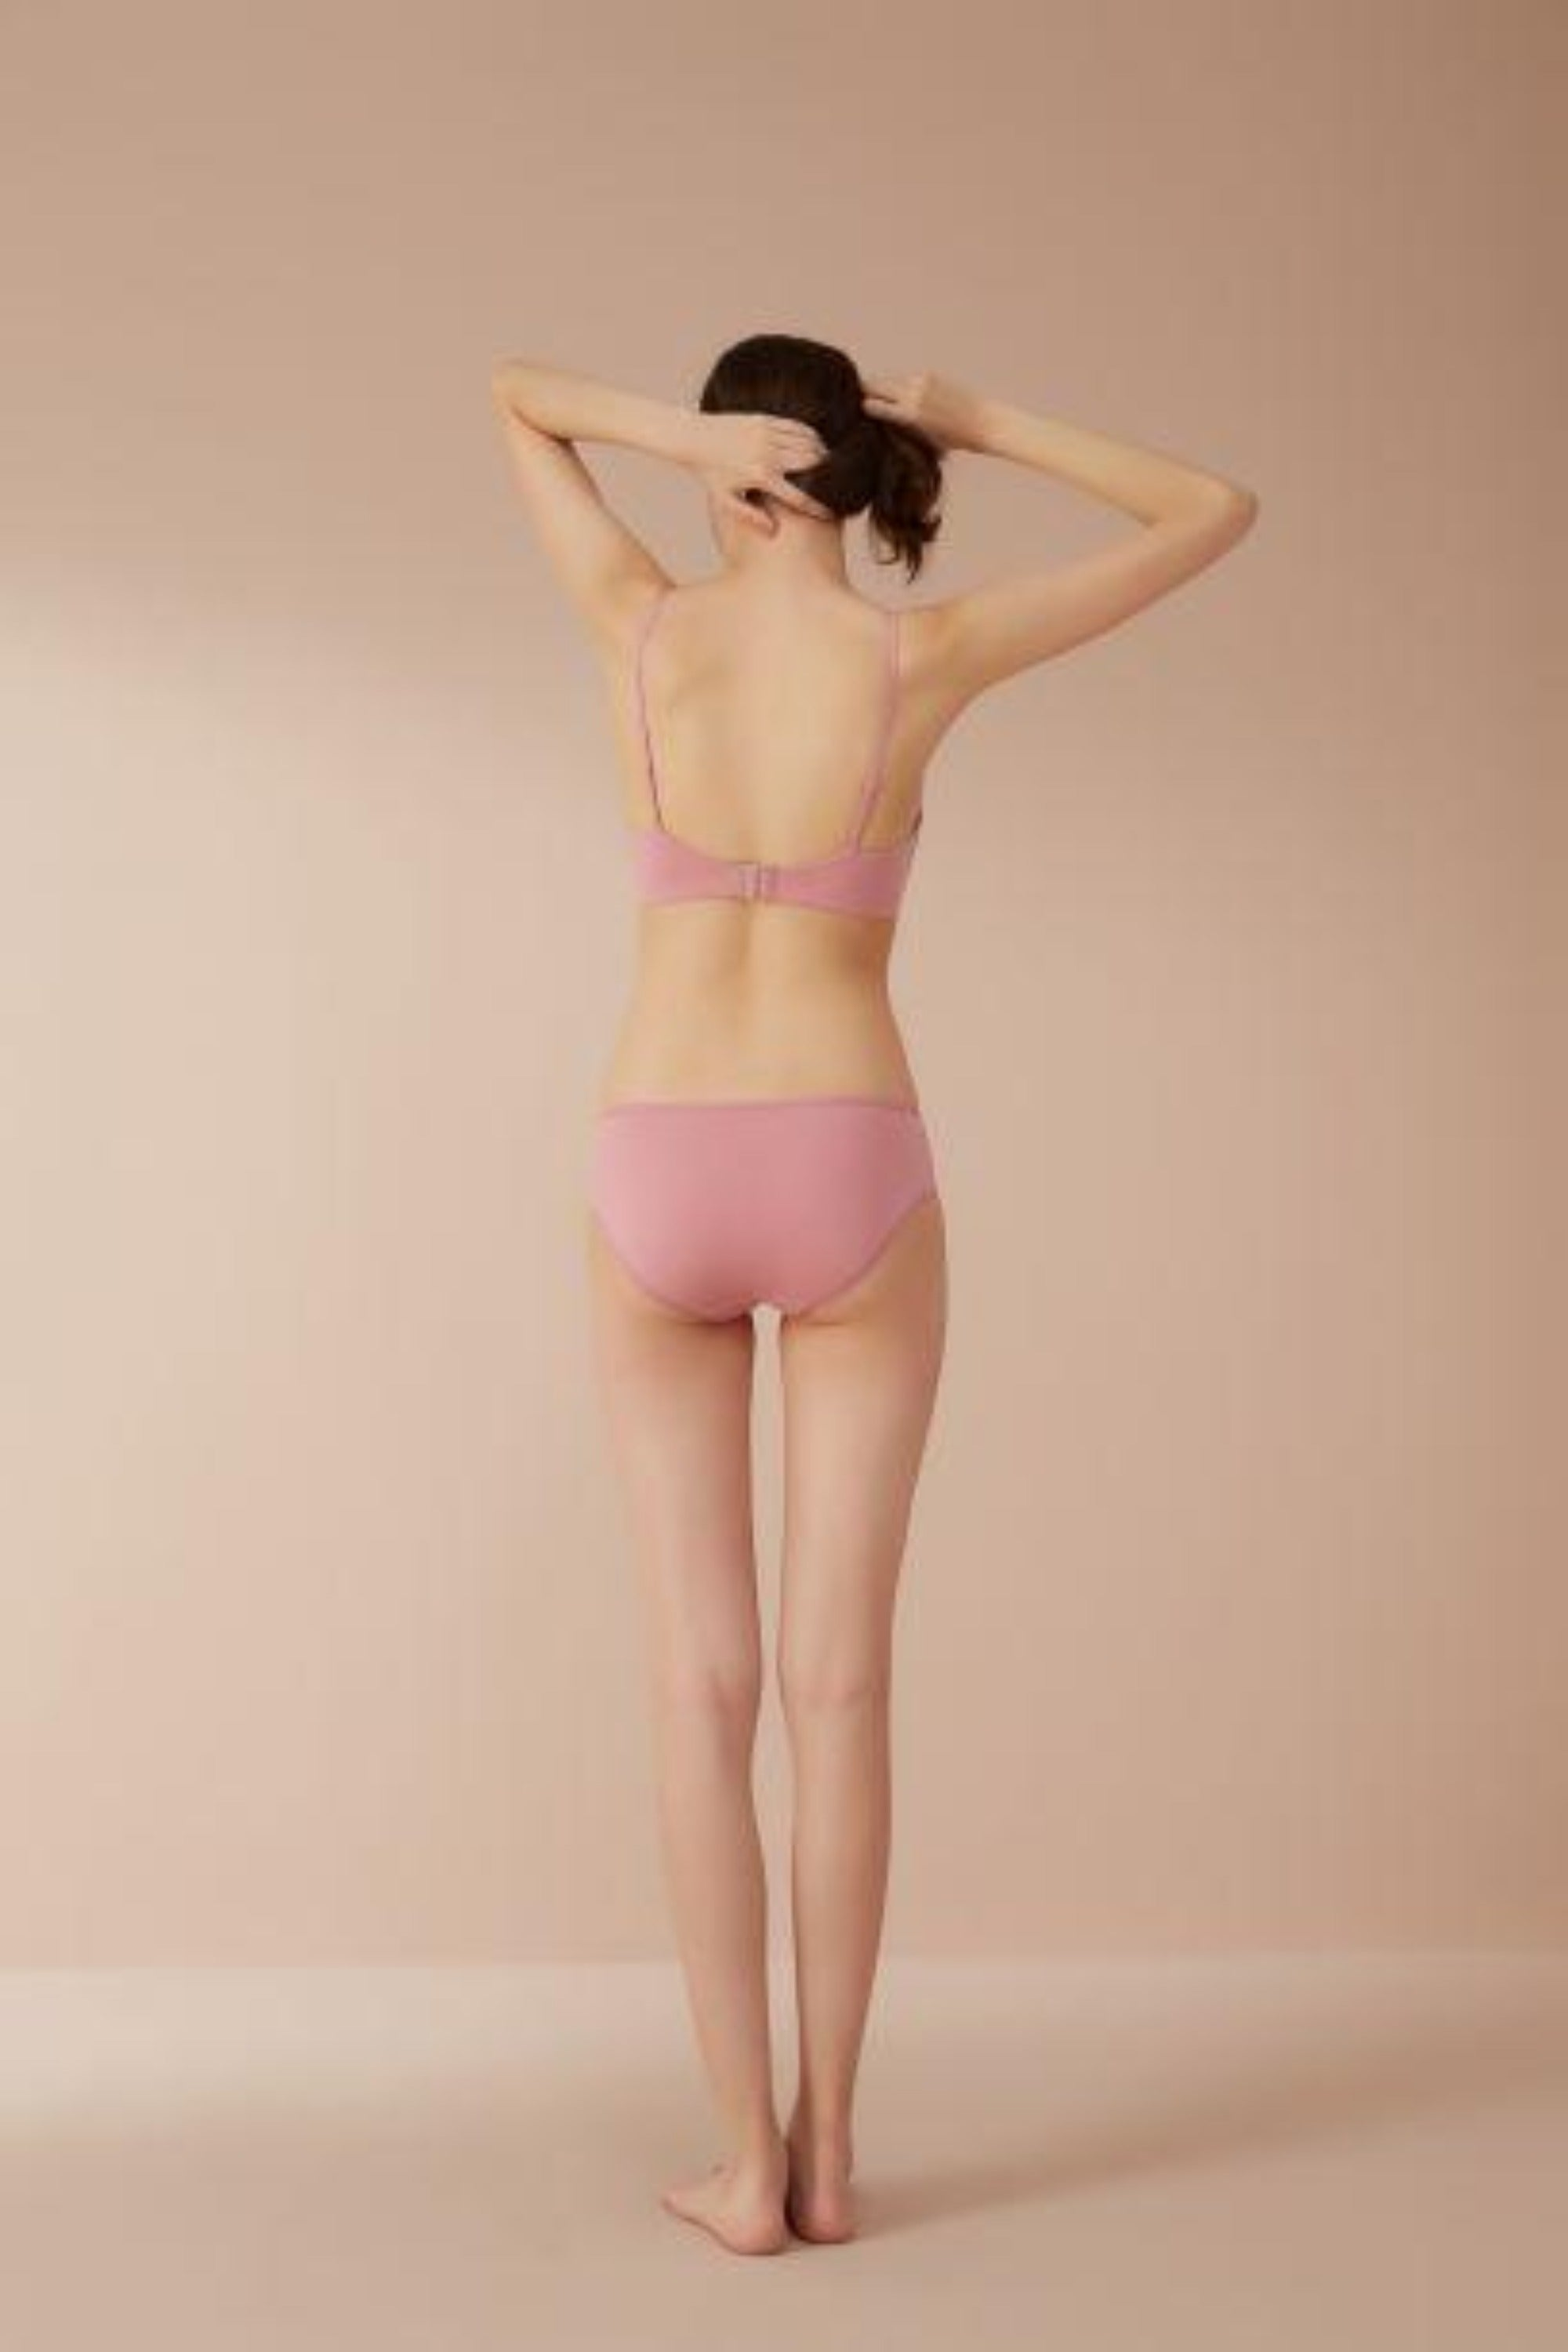 NEIWAI Classic Mid Waist Modal Briefs in Rose, 3 Pack. Moderate Coverage